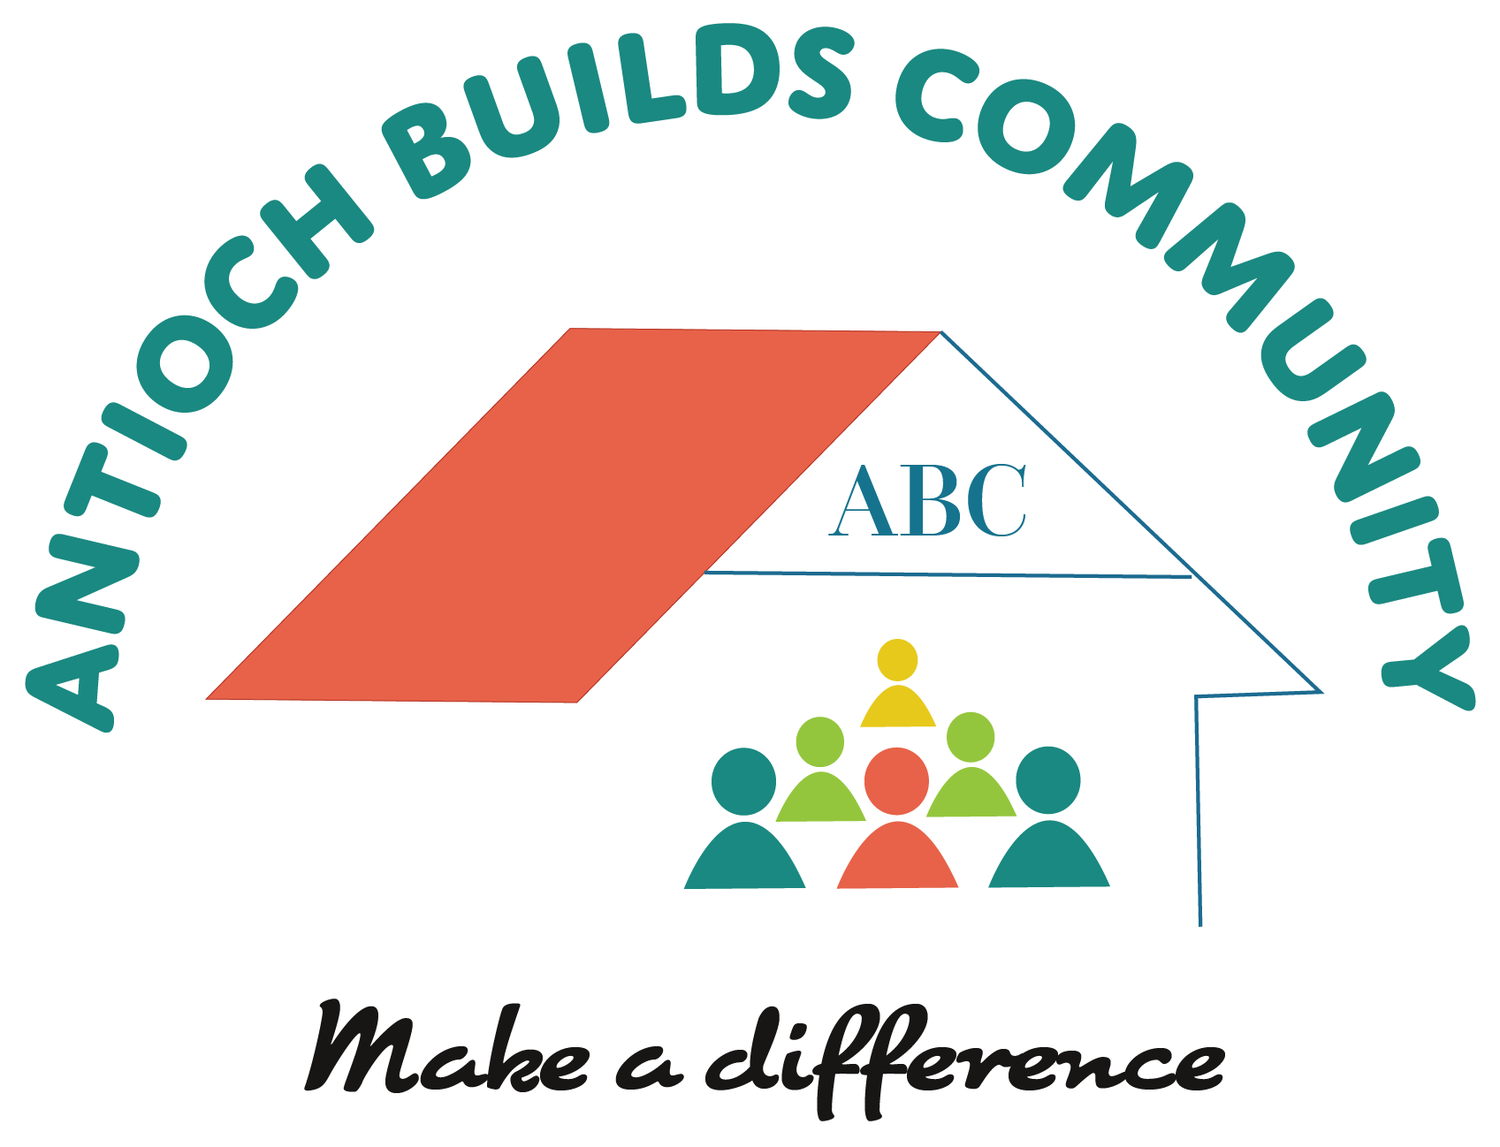 Antioch Builds Community